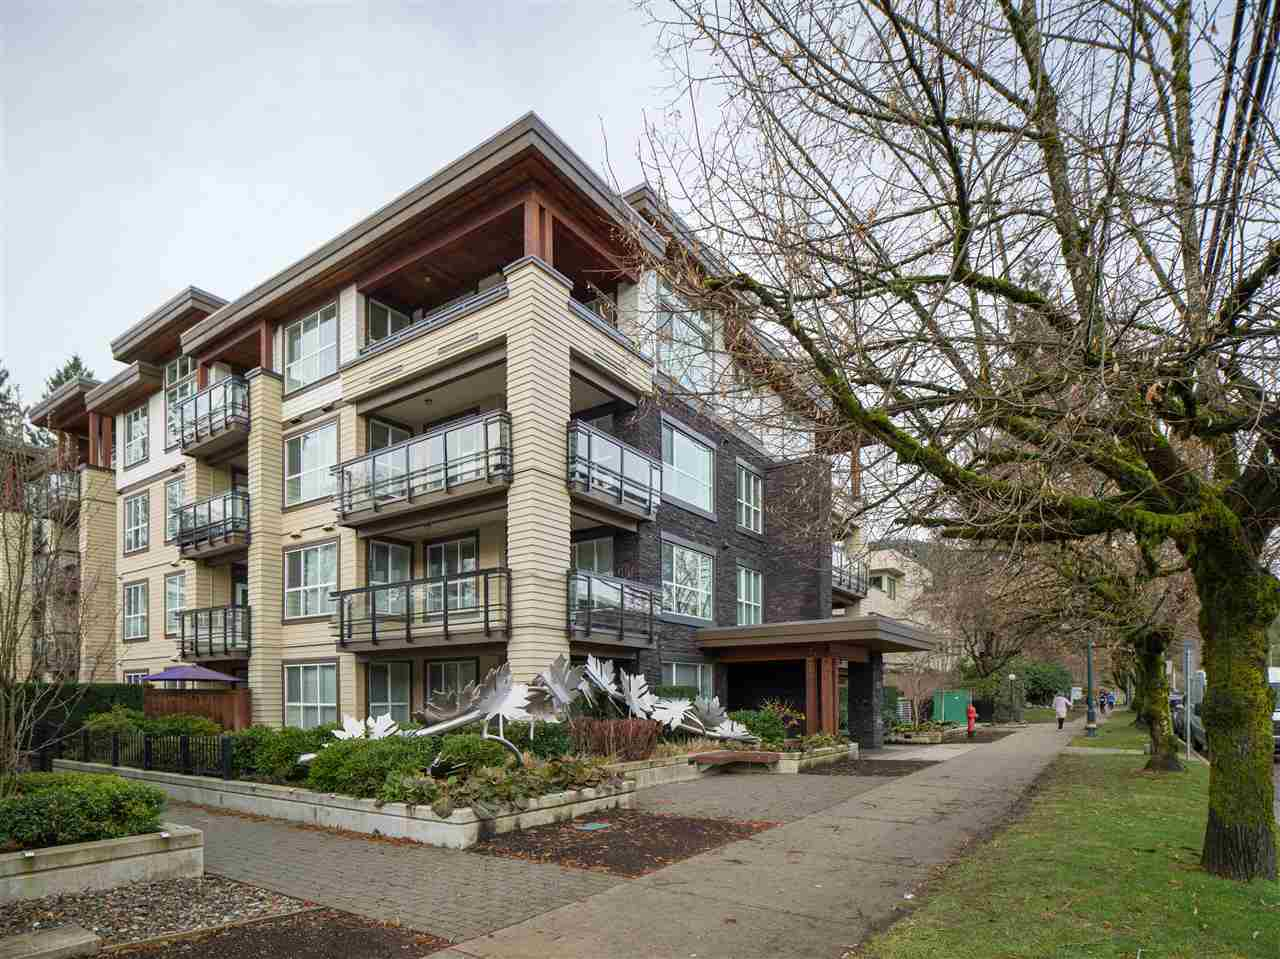 101 3205 MOUNTAIN HIGHWAY - Lynn Valley Apartment/Condo for sale, 2 Bedrooms (R2527517) - #29